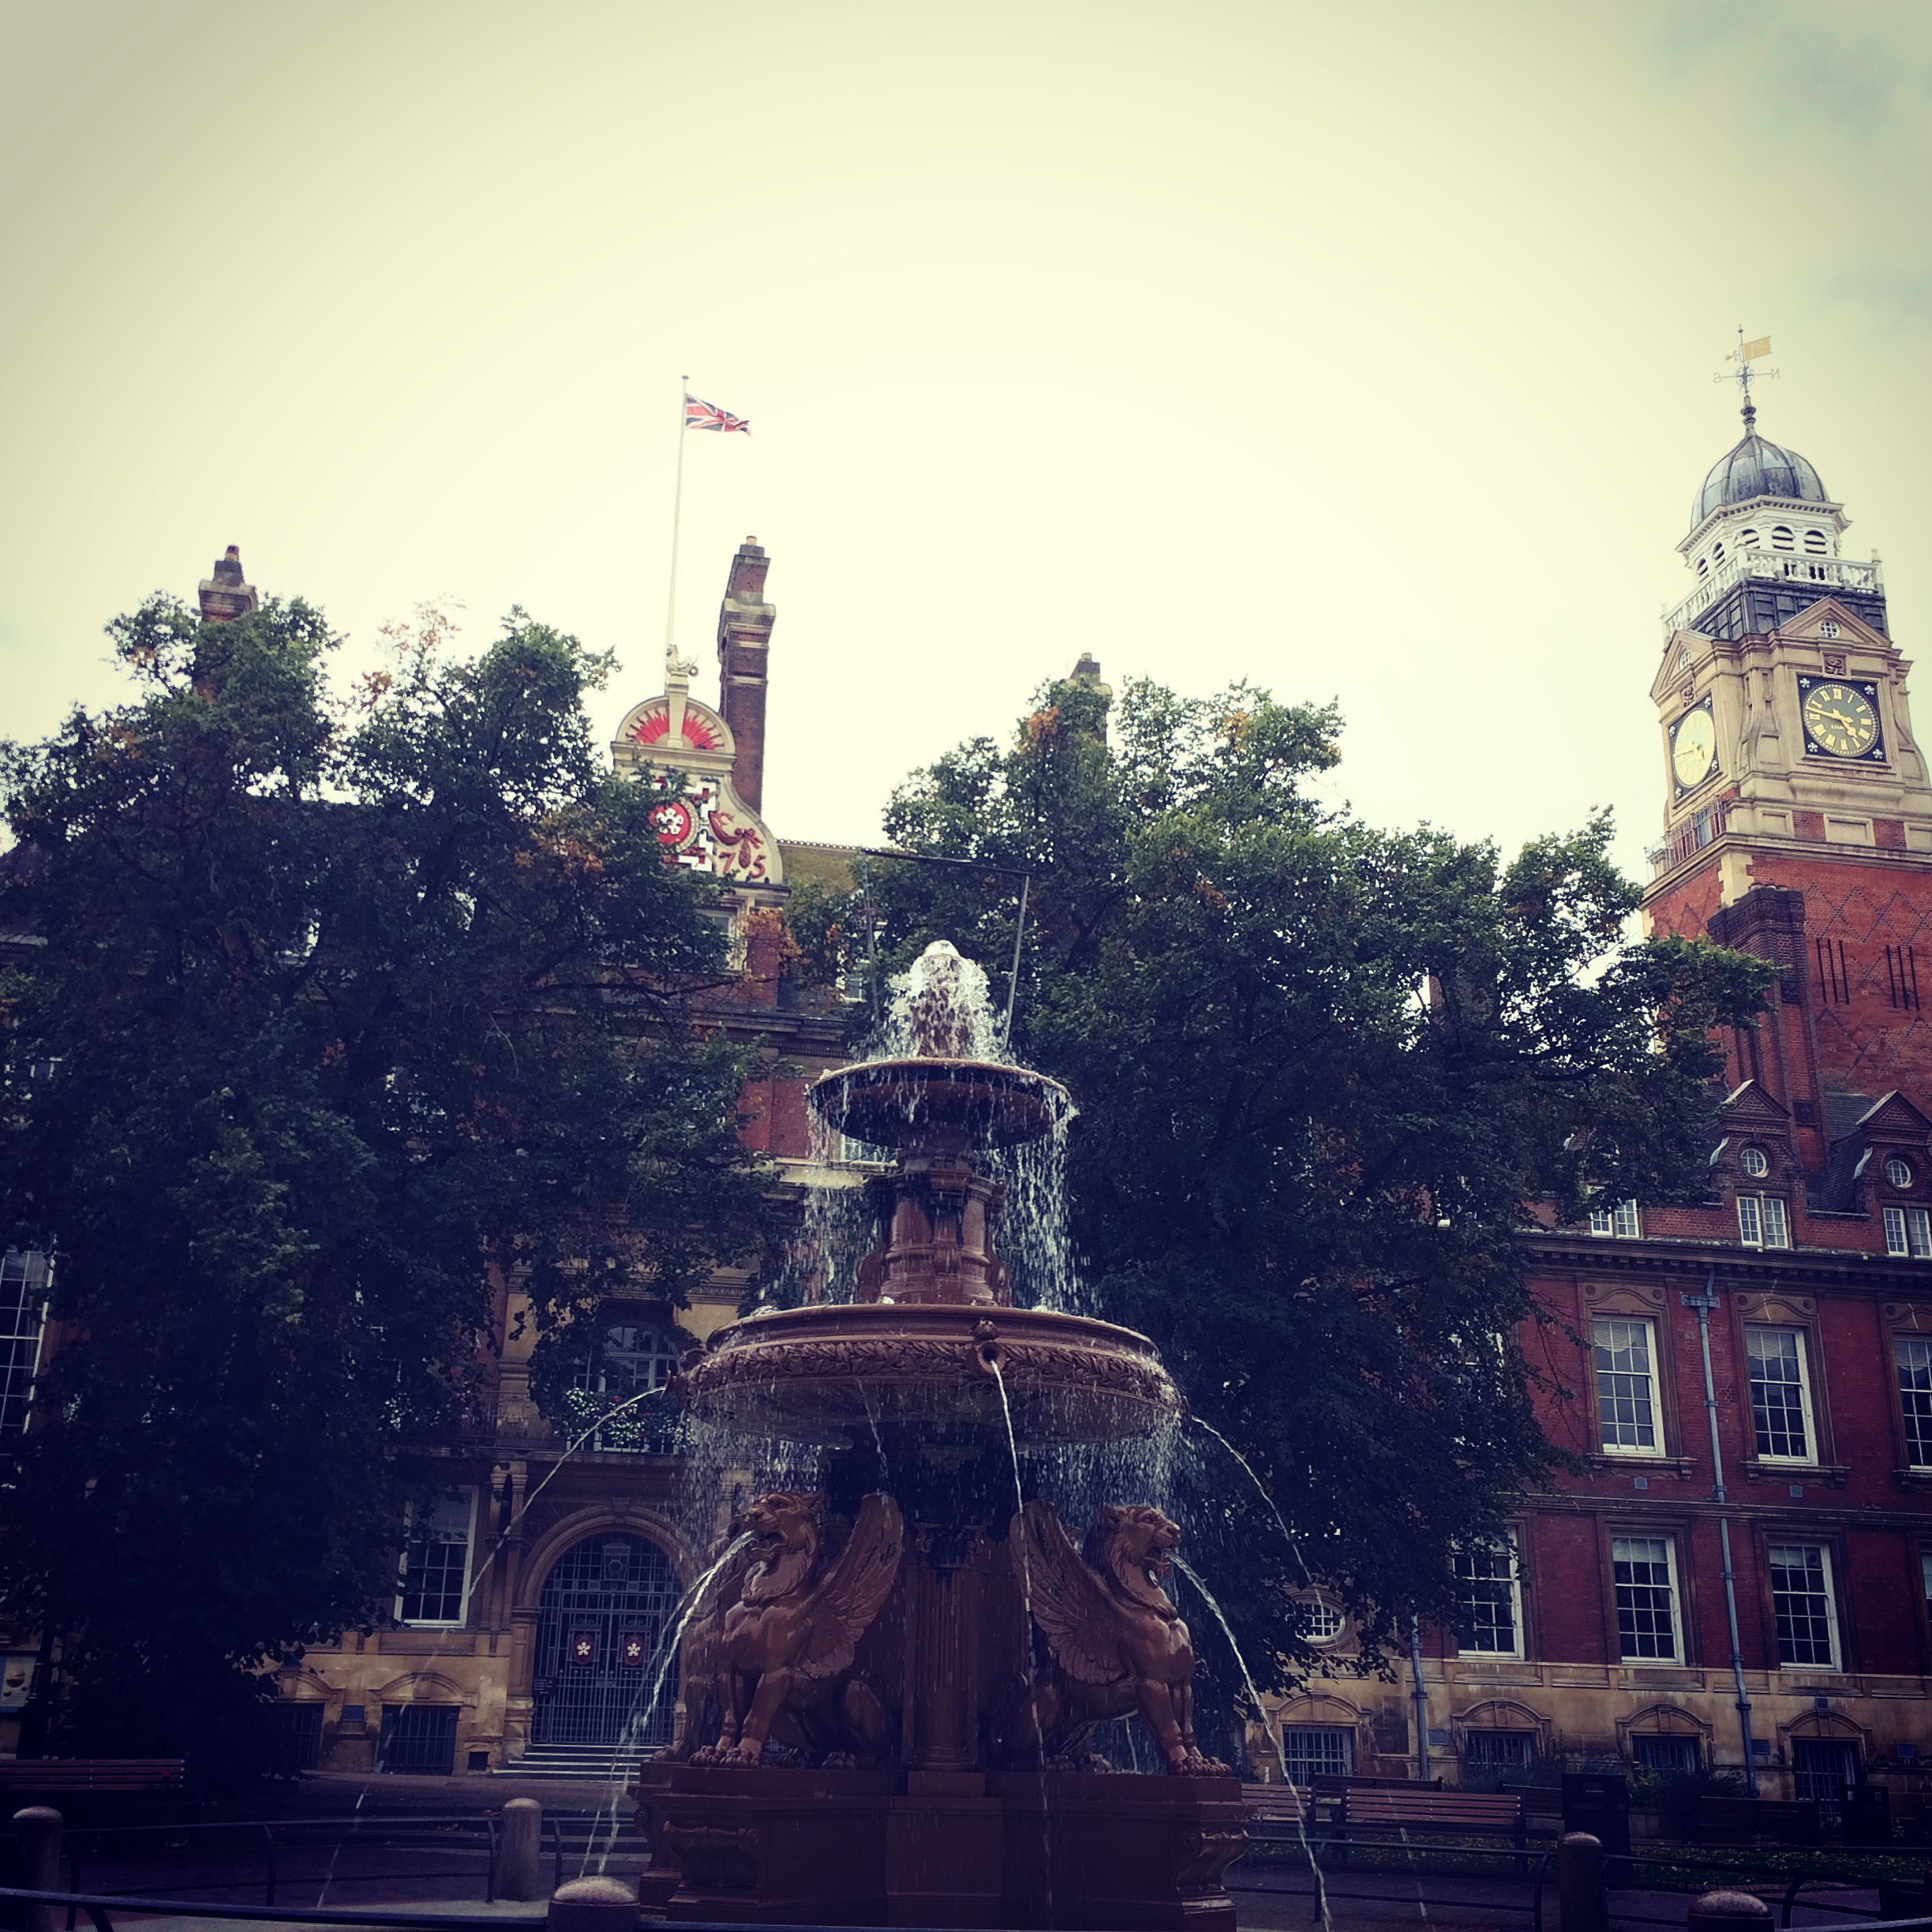 Leicester Town Hall. Doesn't look bad, but smells a bit dodgy..